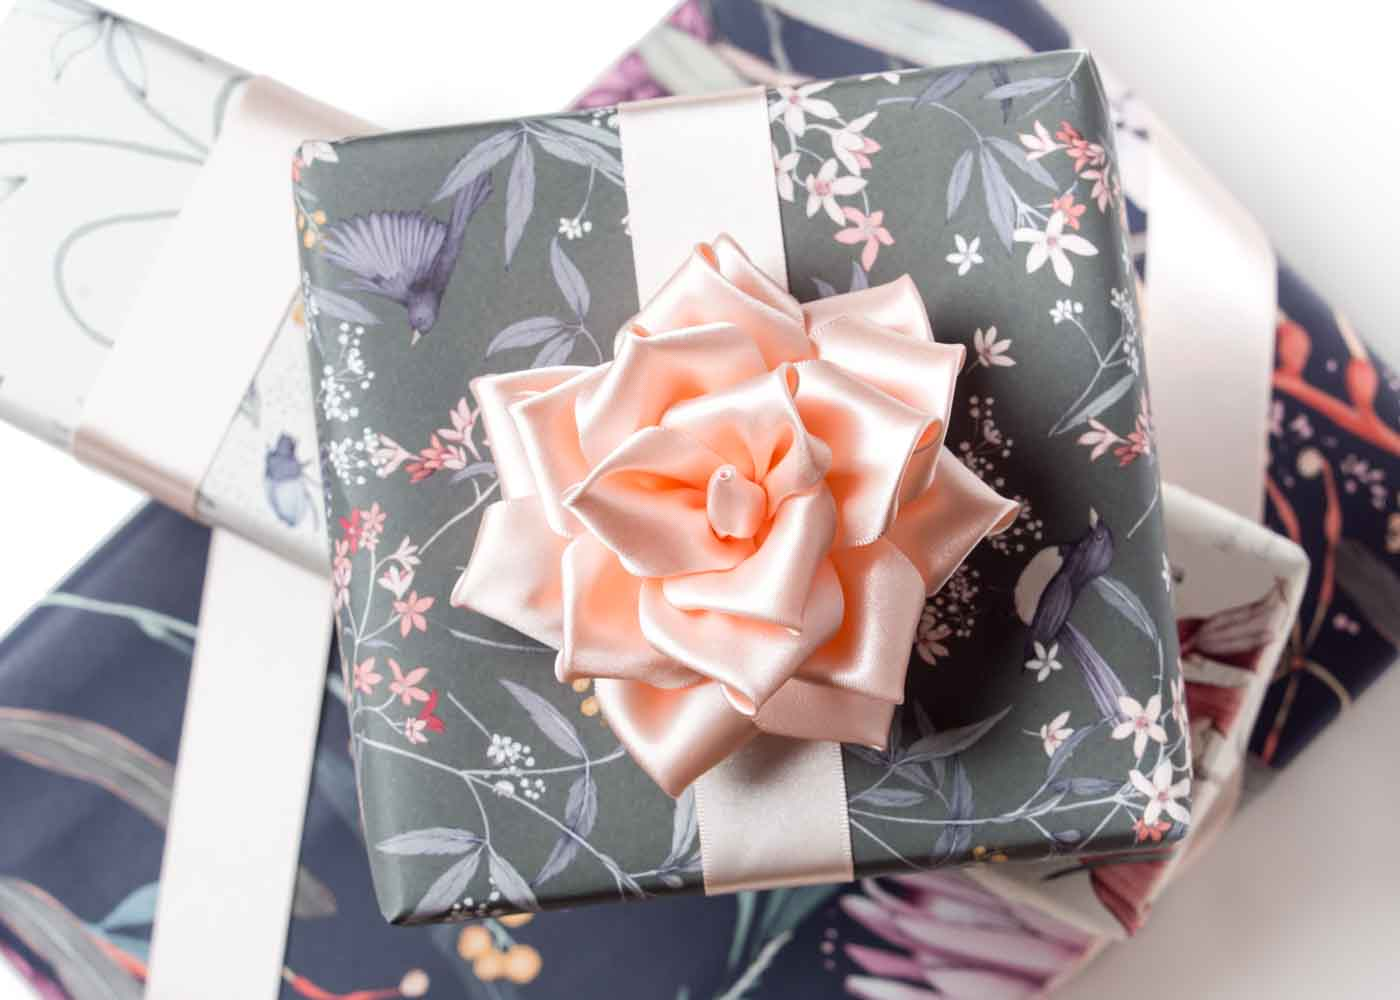 10 of the best videos weve watched on tying bows and getting a rose of pink satin ribbon that we made following a diy youtube tutorial by the mightylinksfo